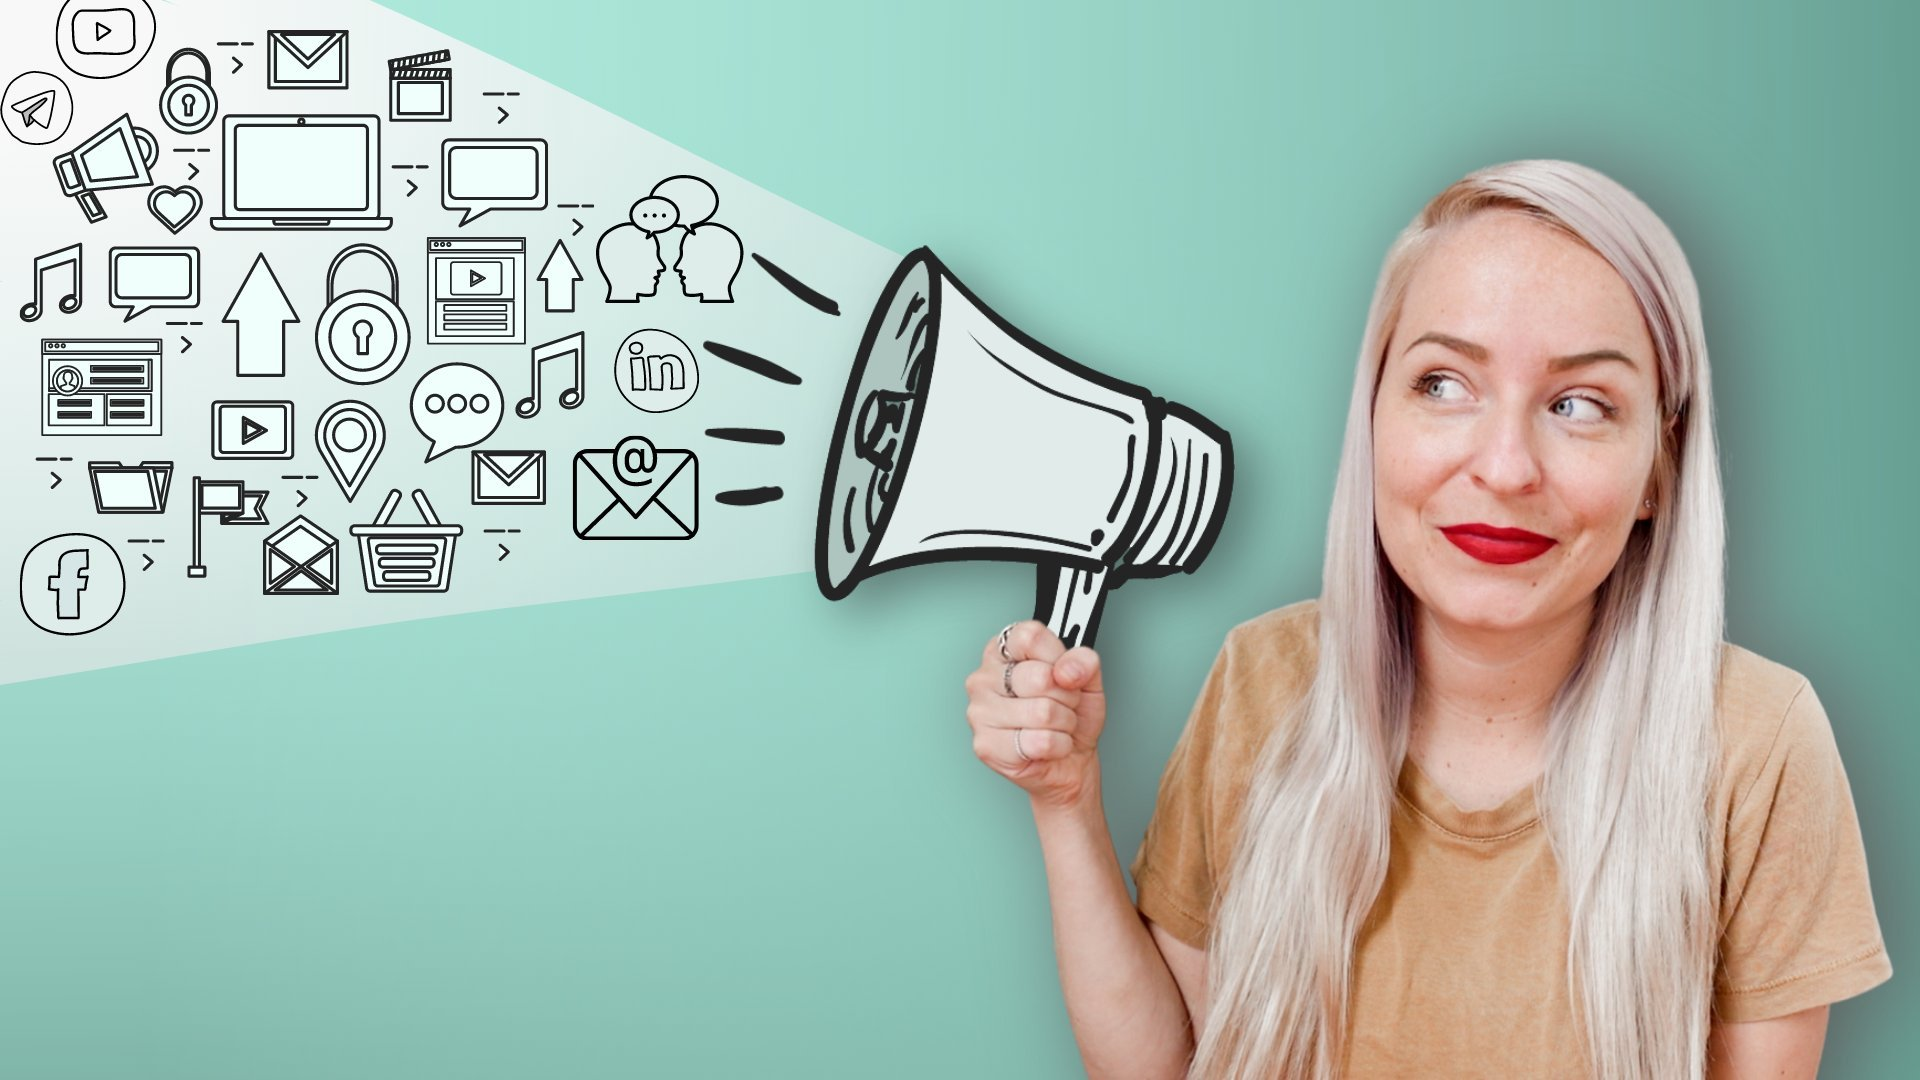 Digital Marketing Strategy: Promote Online Events with Confidence